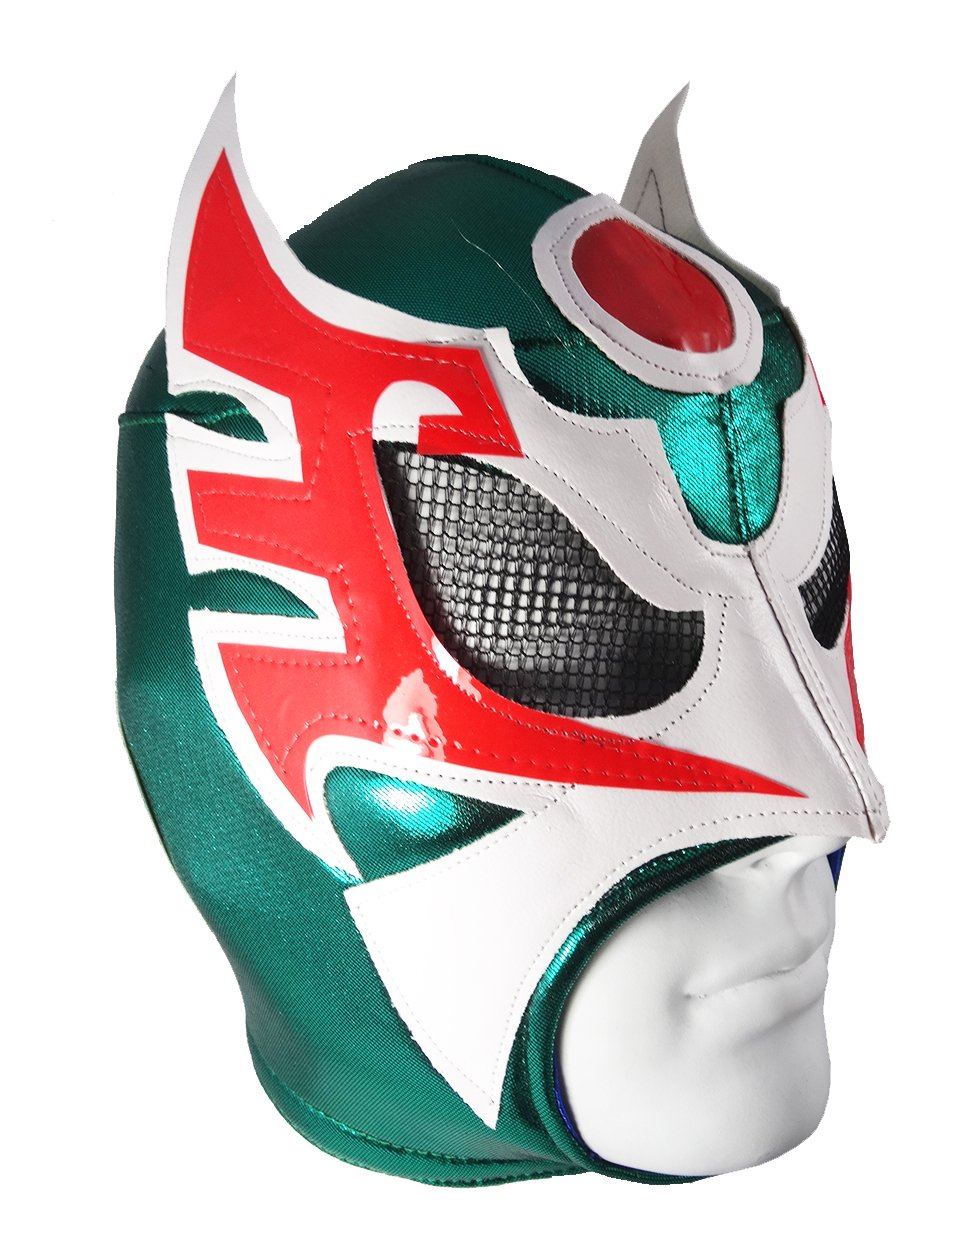 ULTIMO GUERRERO Adult Lucha Libre Wrestling Mask (pro-fit) - Green/White/Red by Mask Maniac